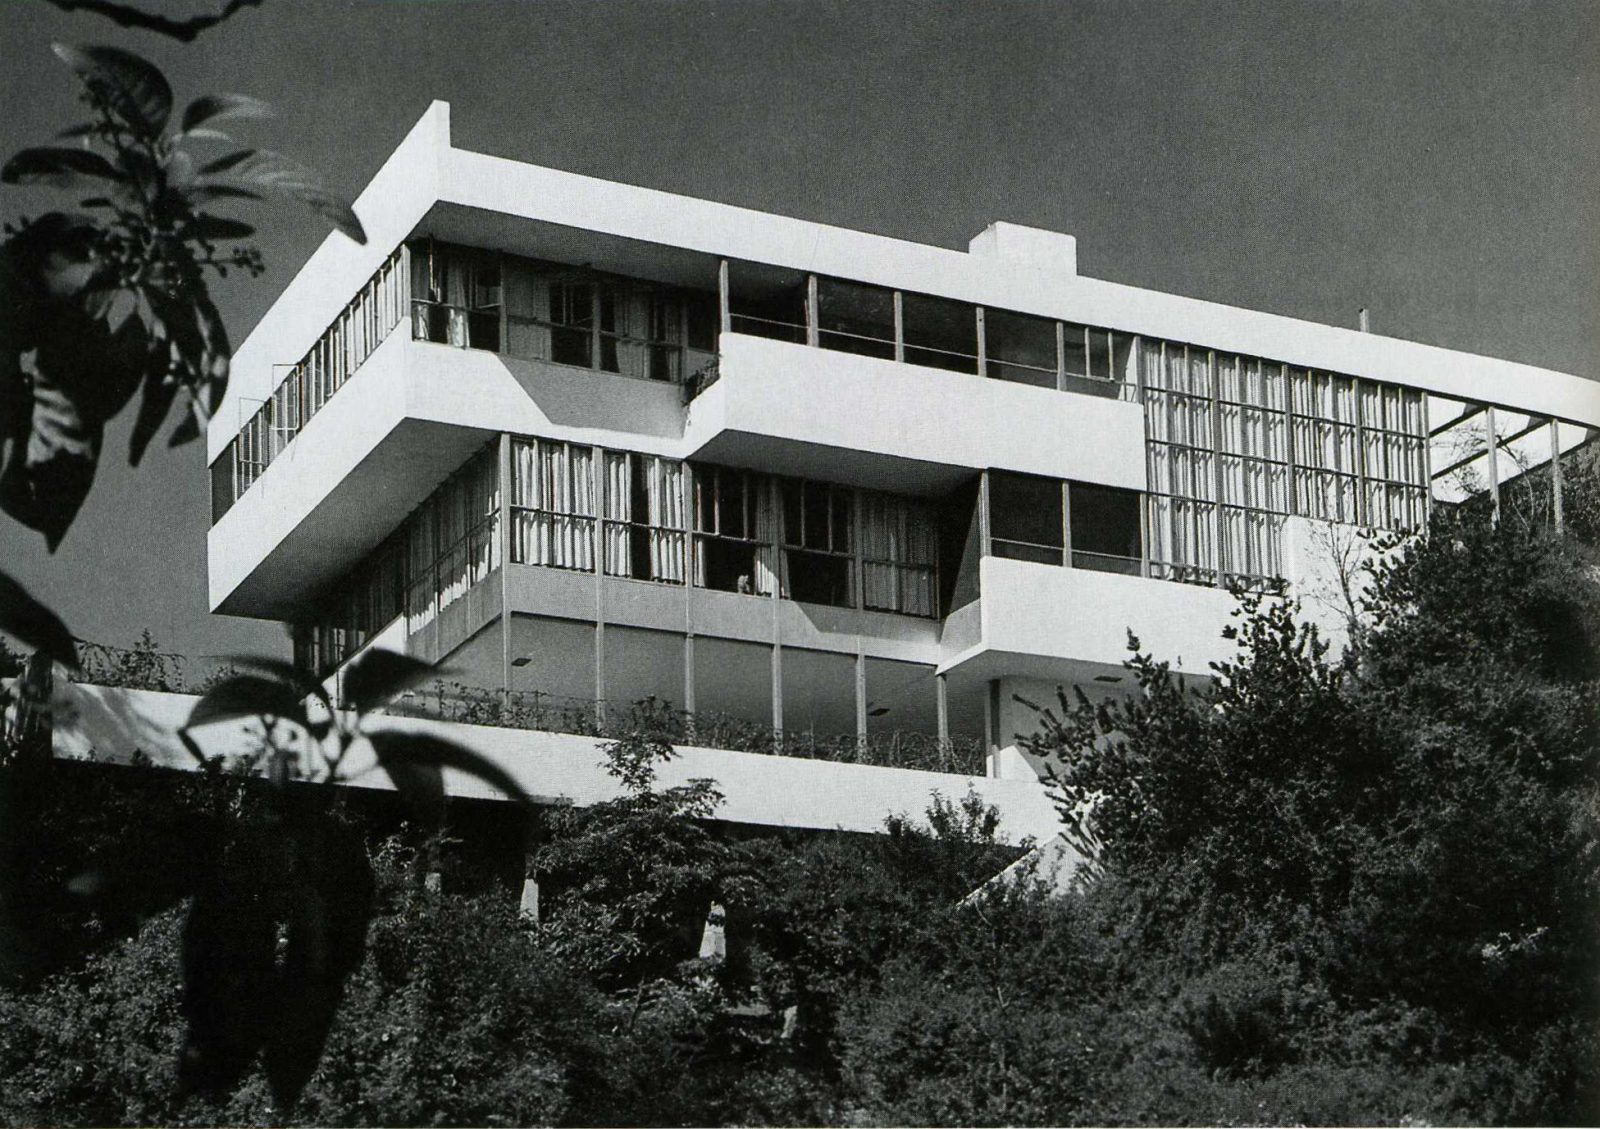 Lovell House, Richard Neutra, The Modern House